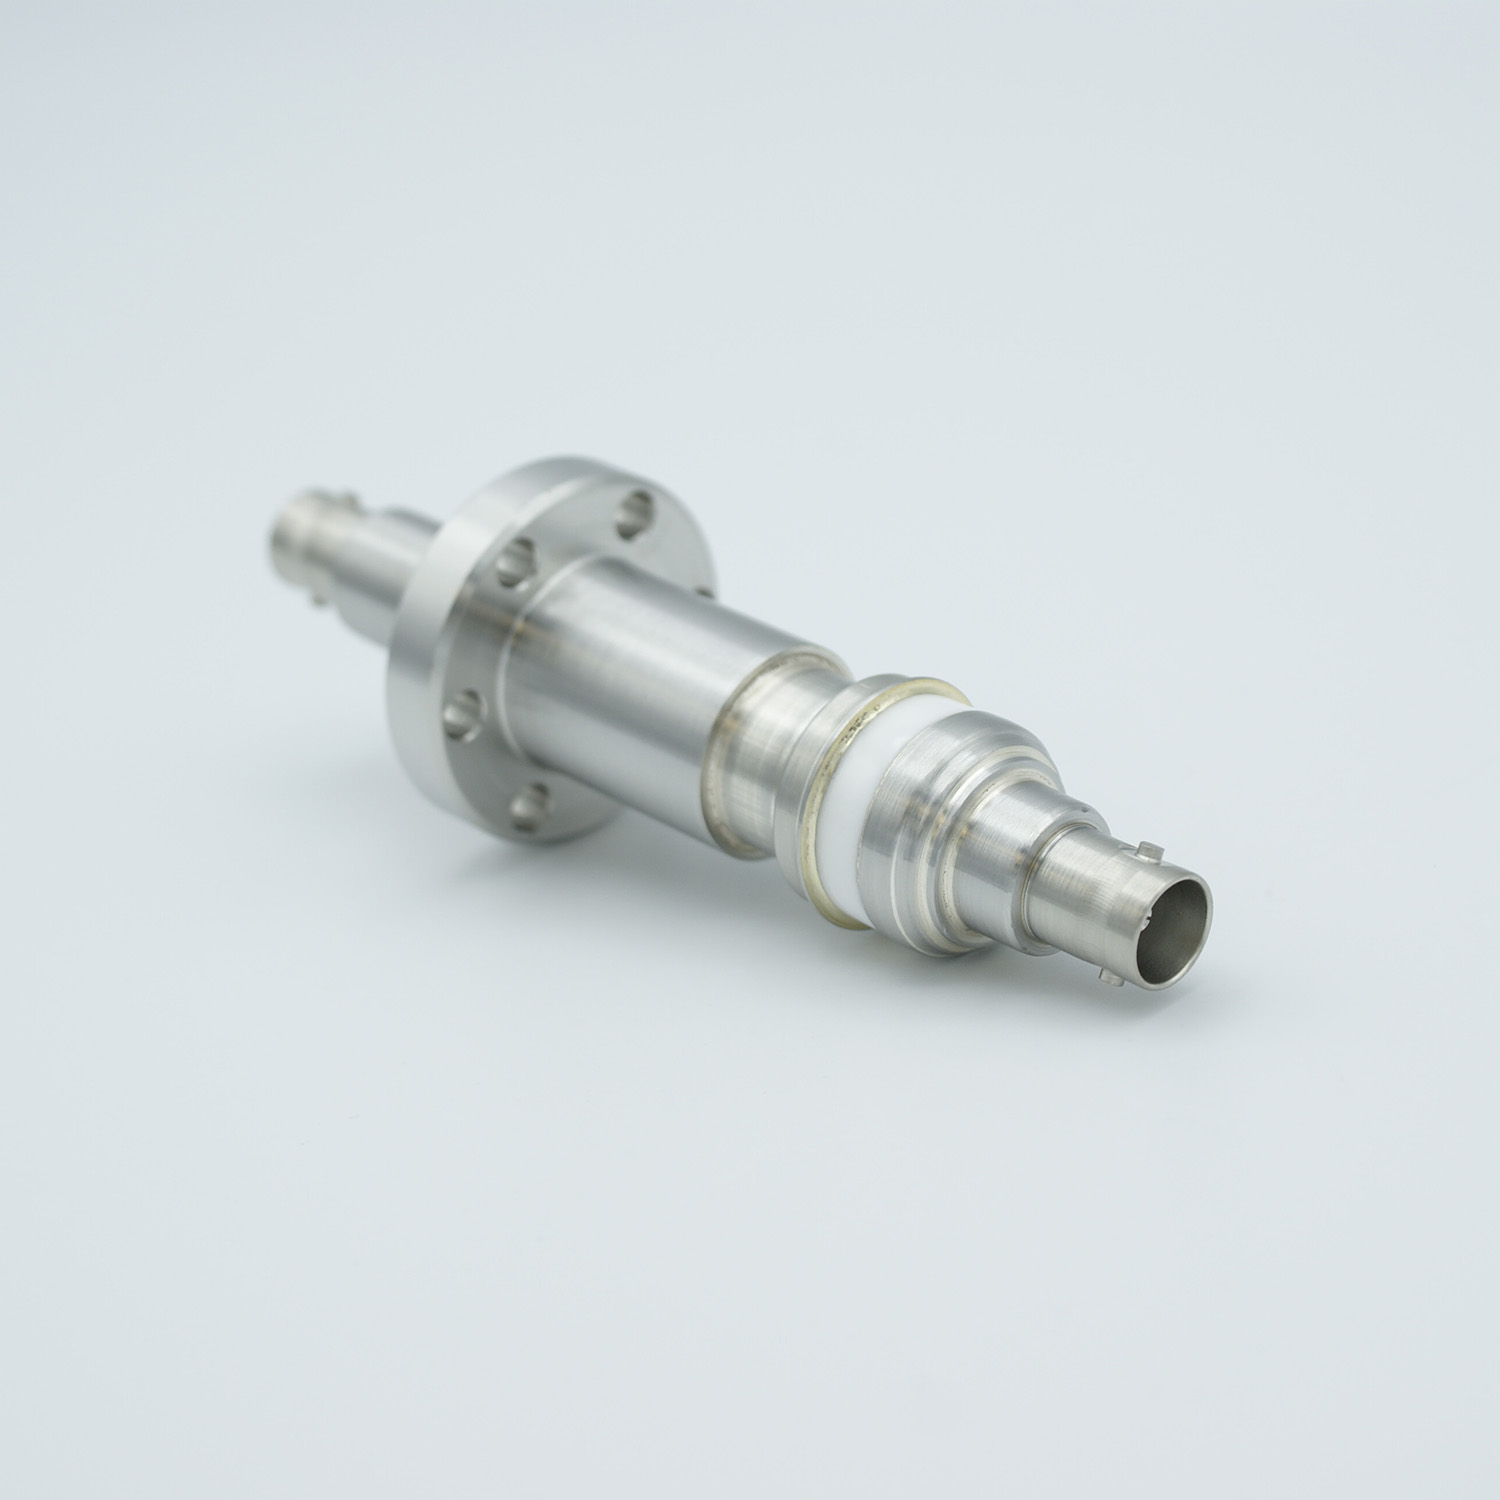 Floating shield, double ended BNC feedthrough 500V 3 Amp, DN19CF flange without air side connector